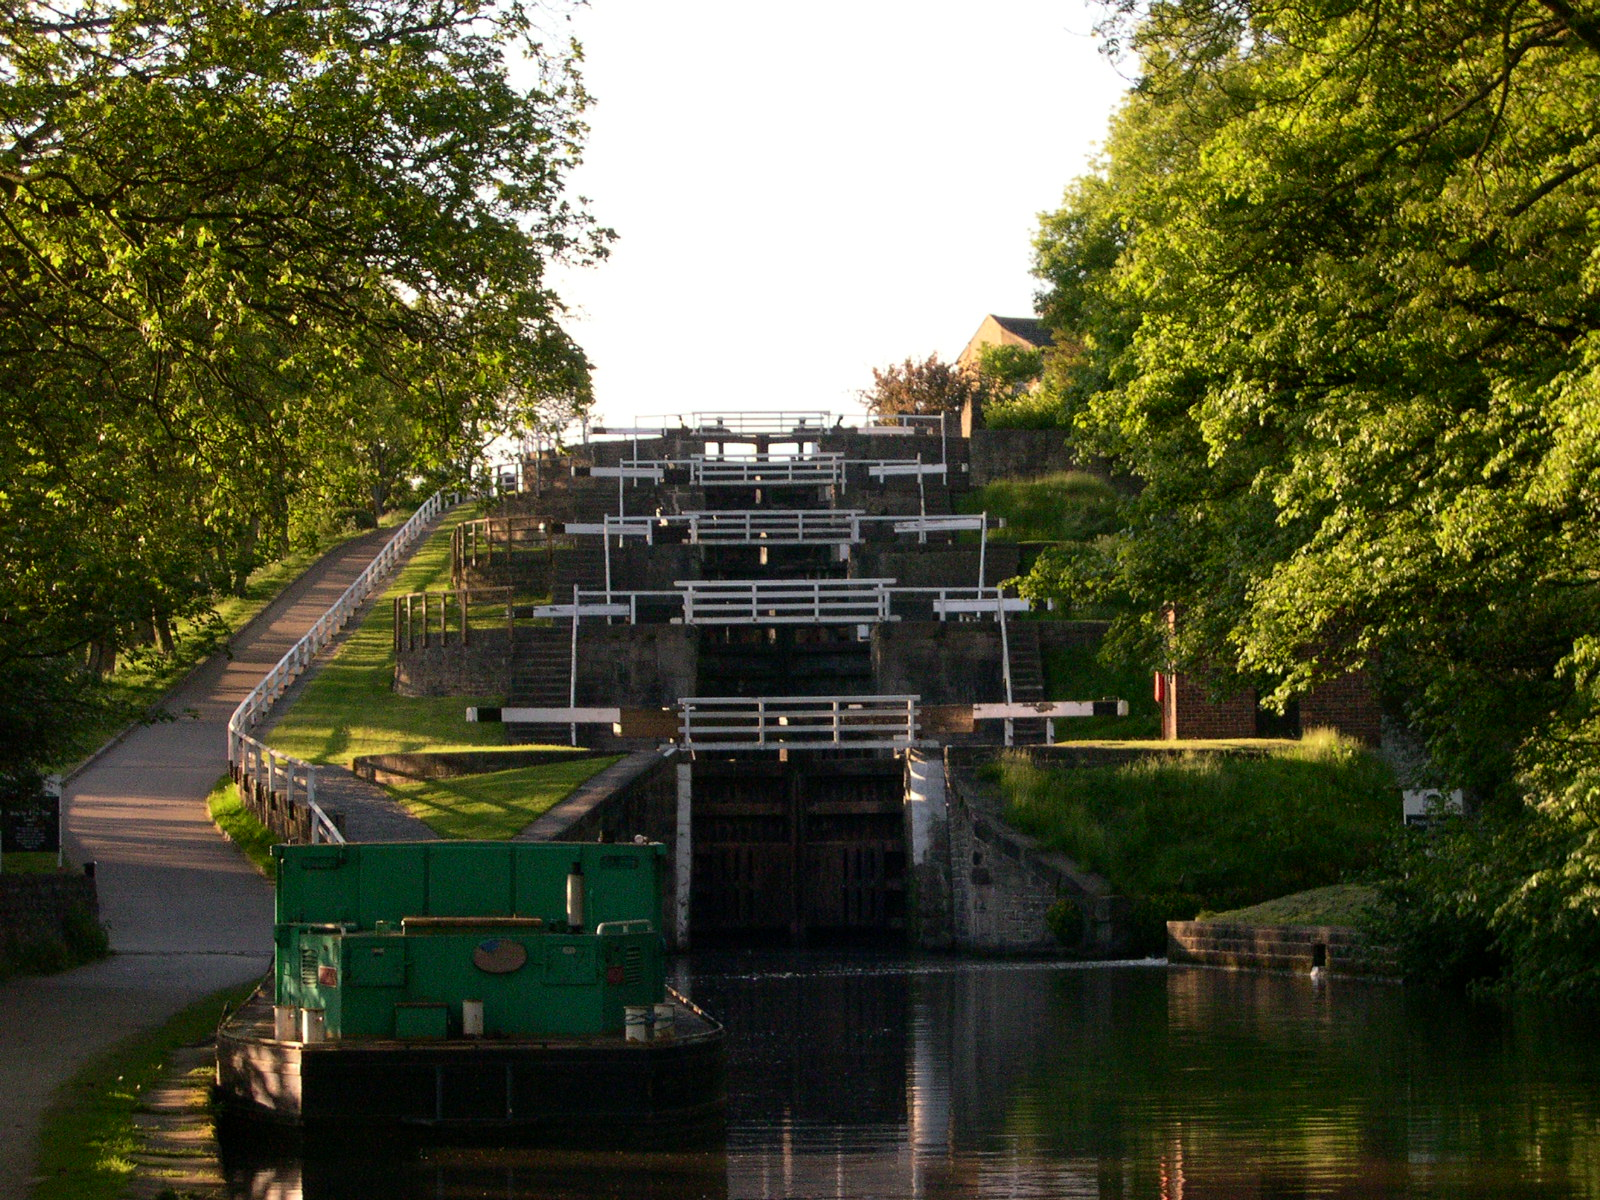 Bingley Five Rise Locks. Credit Michael Spiller